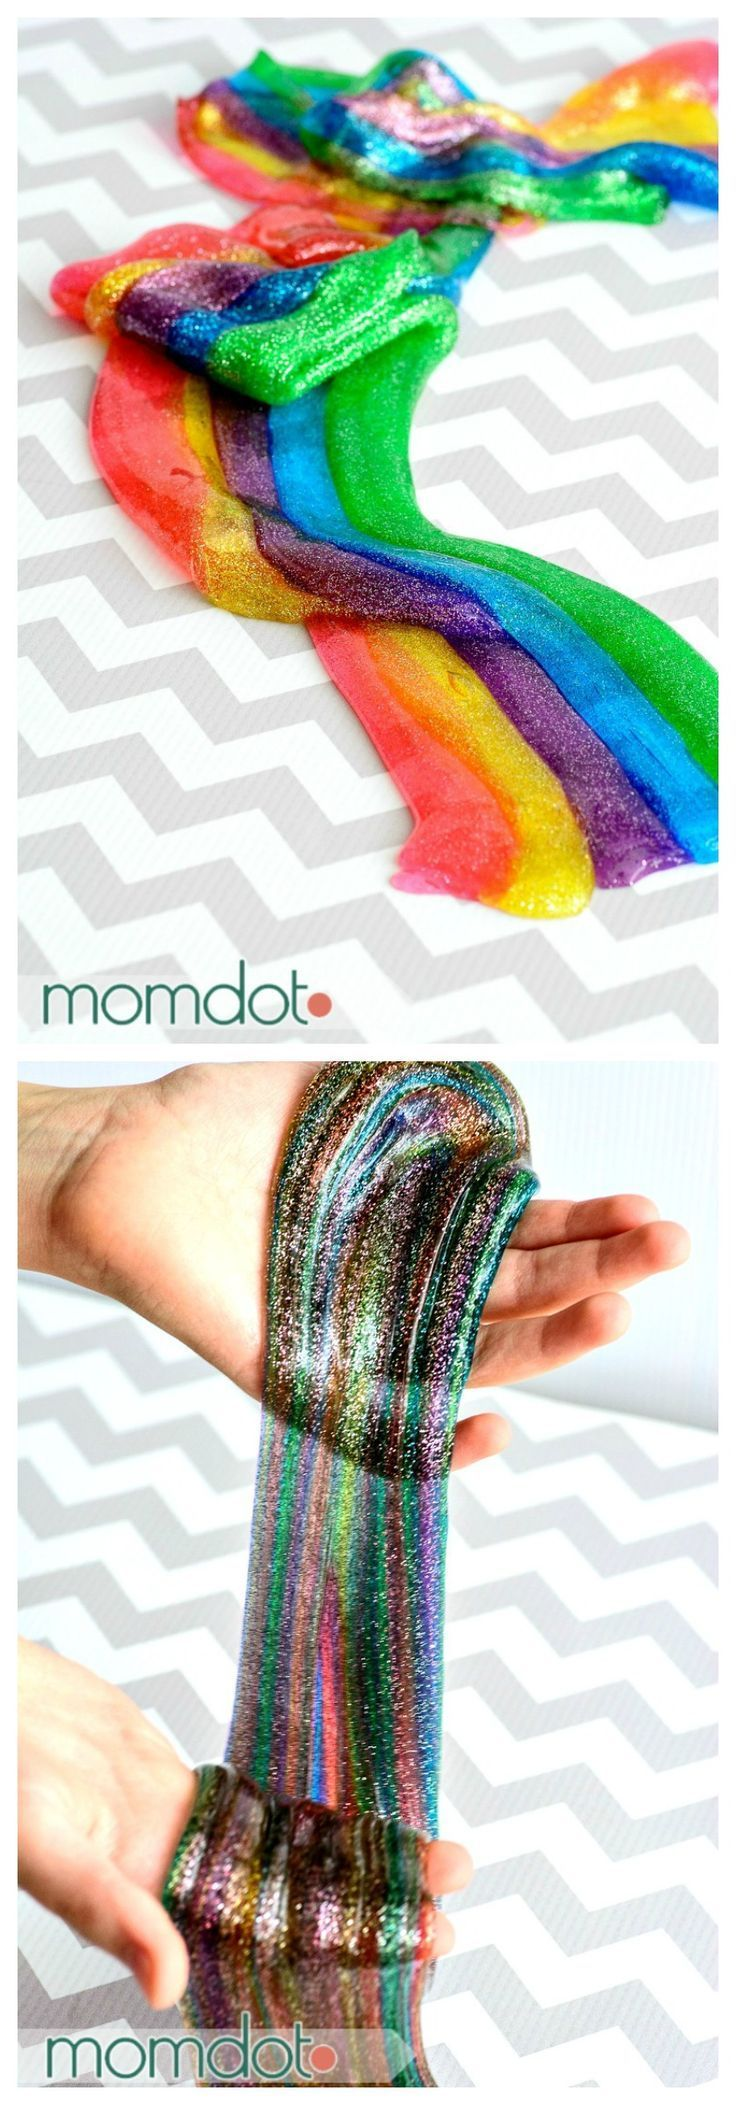 Rainbow Slime: How To Make Rainbow Slime For Sensory Fun And Super Awesome  Playtime